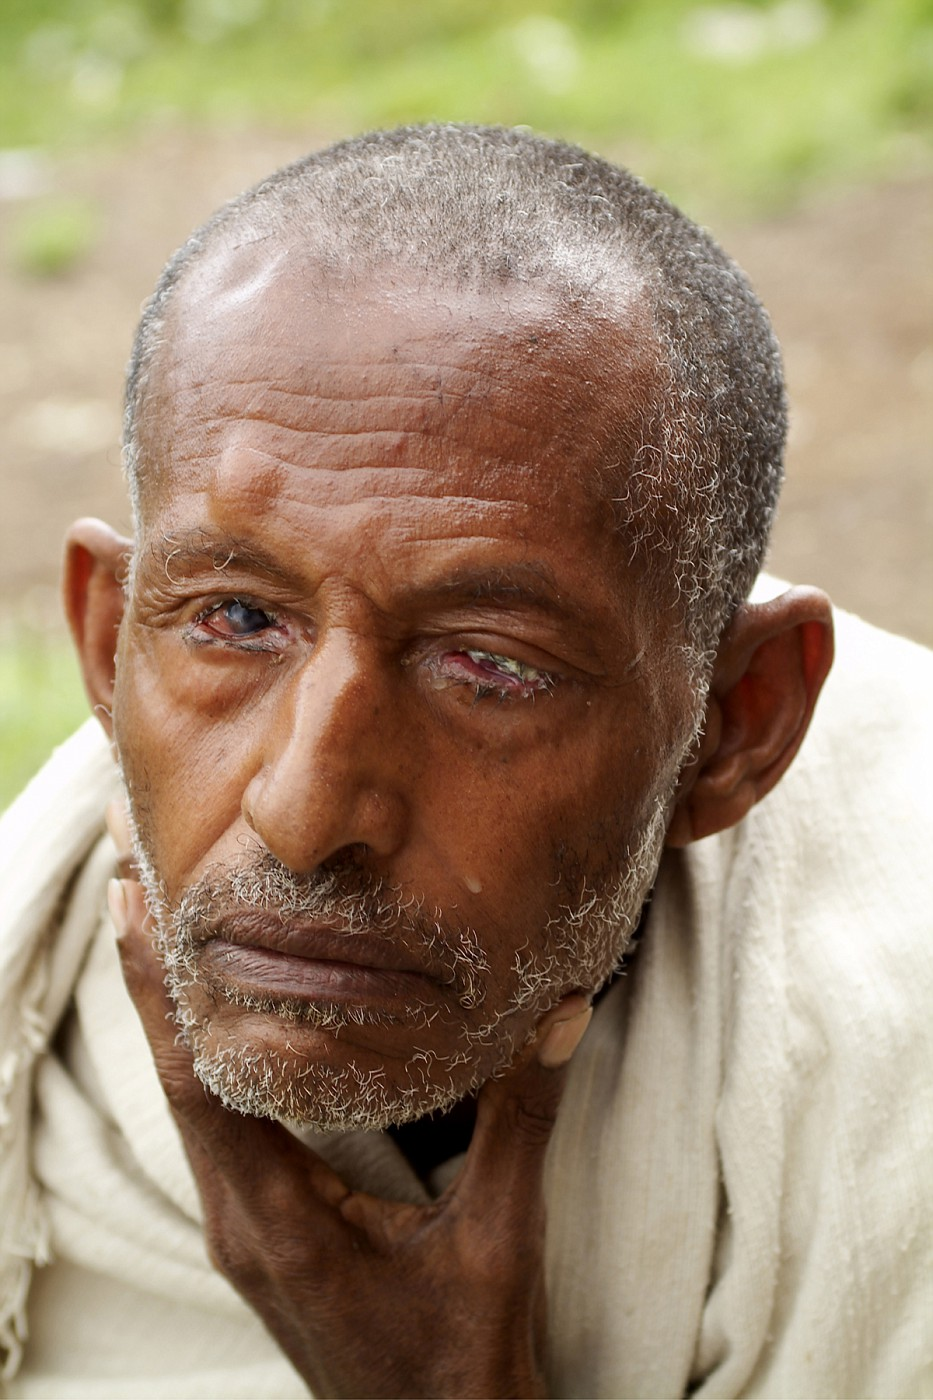 13 old man trachoma